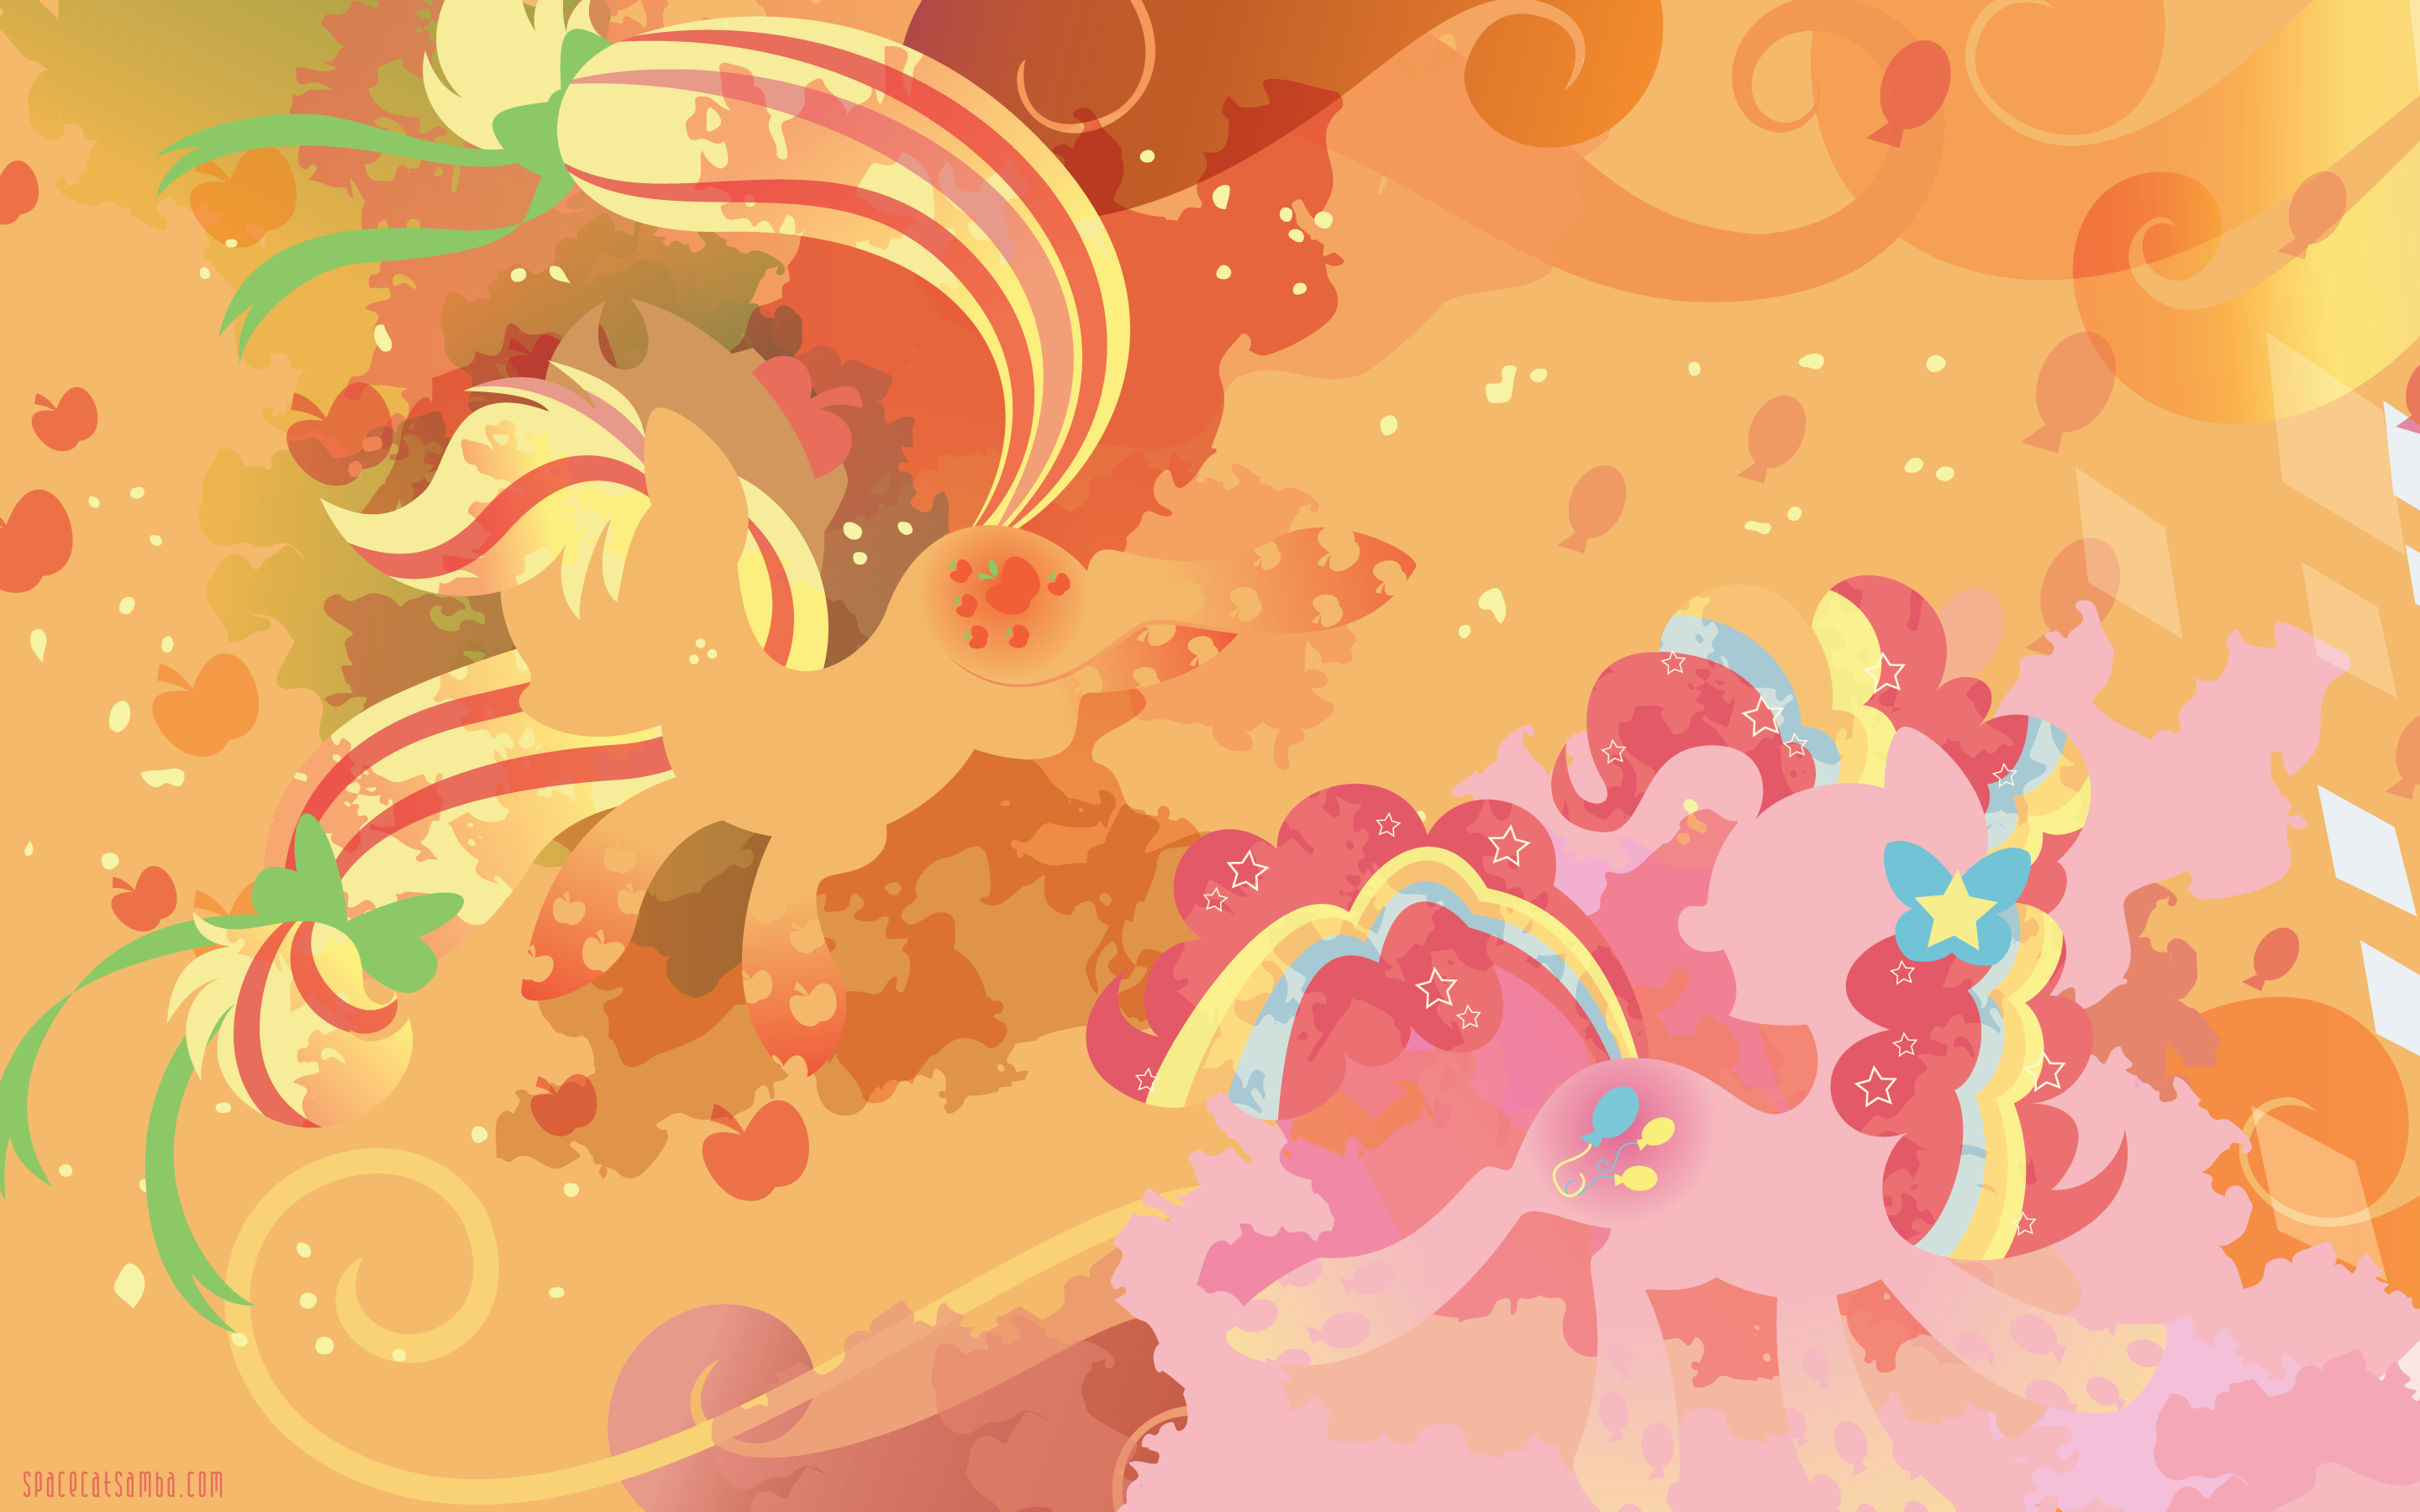 Rainbow Power Applejack And Pinkie Pie furthermore GoldersGreen as well Fiche Galerie 1 Type Wall Rpg id 2487 Supports id 35 So Galeries as well Bloom Musa Season Six Photo as well . on wall nd